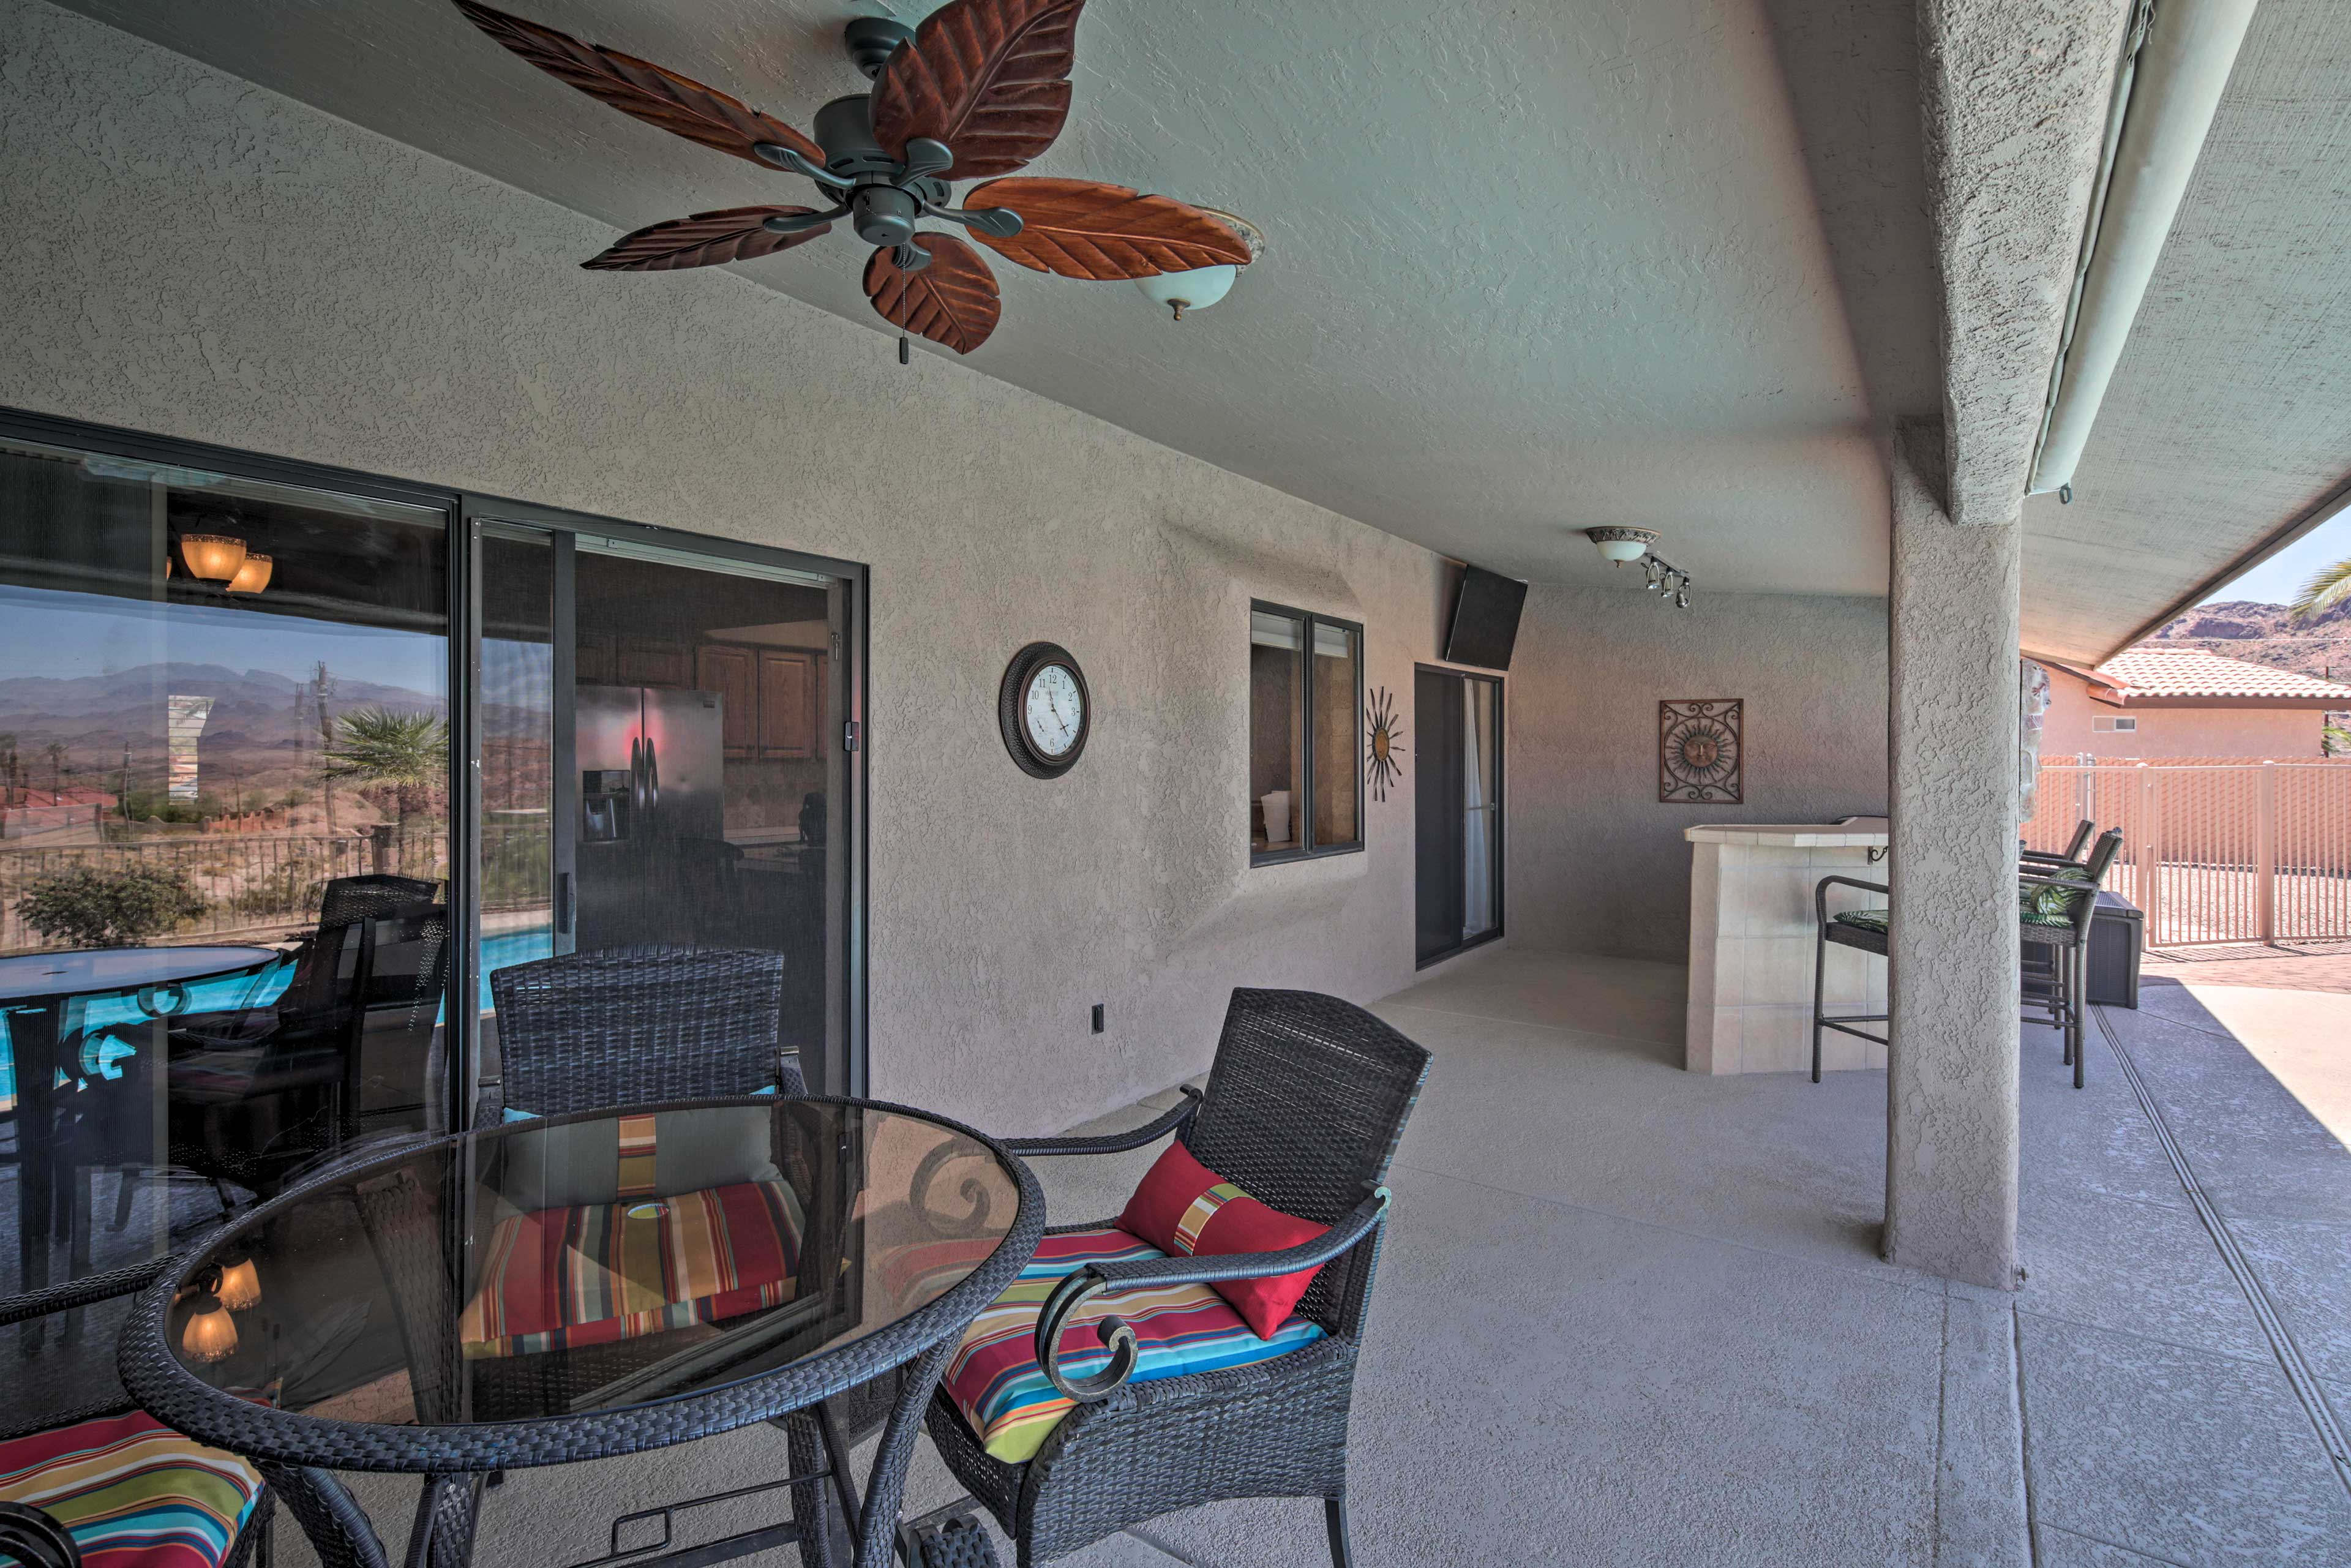 Outside, the covered patio space features seating and its own TV.